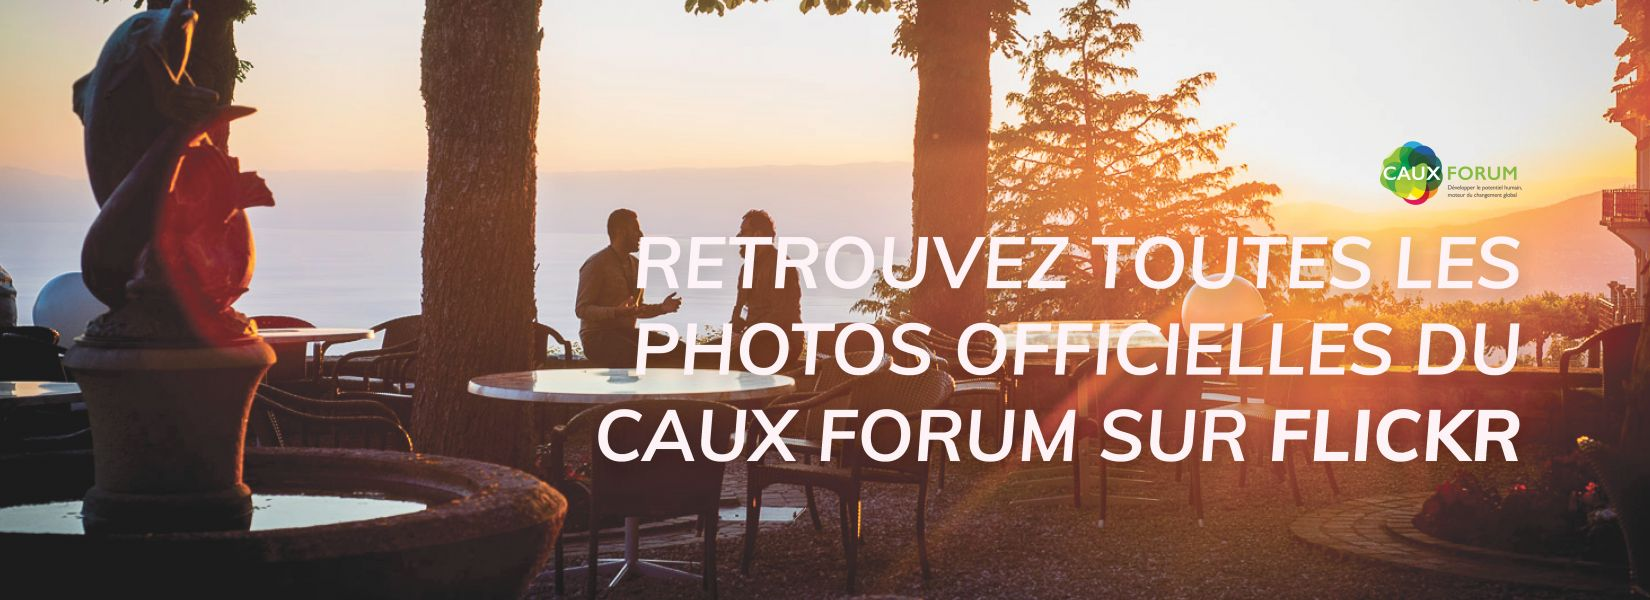 Caux Forum Flickr FR